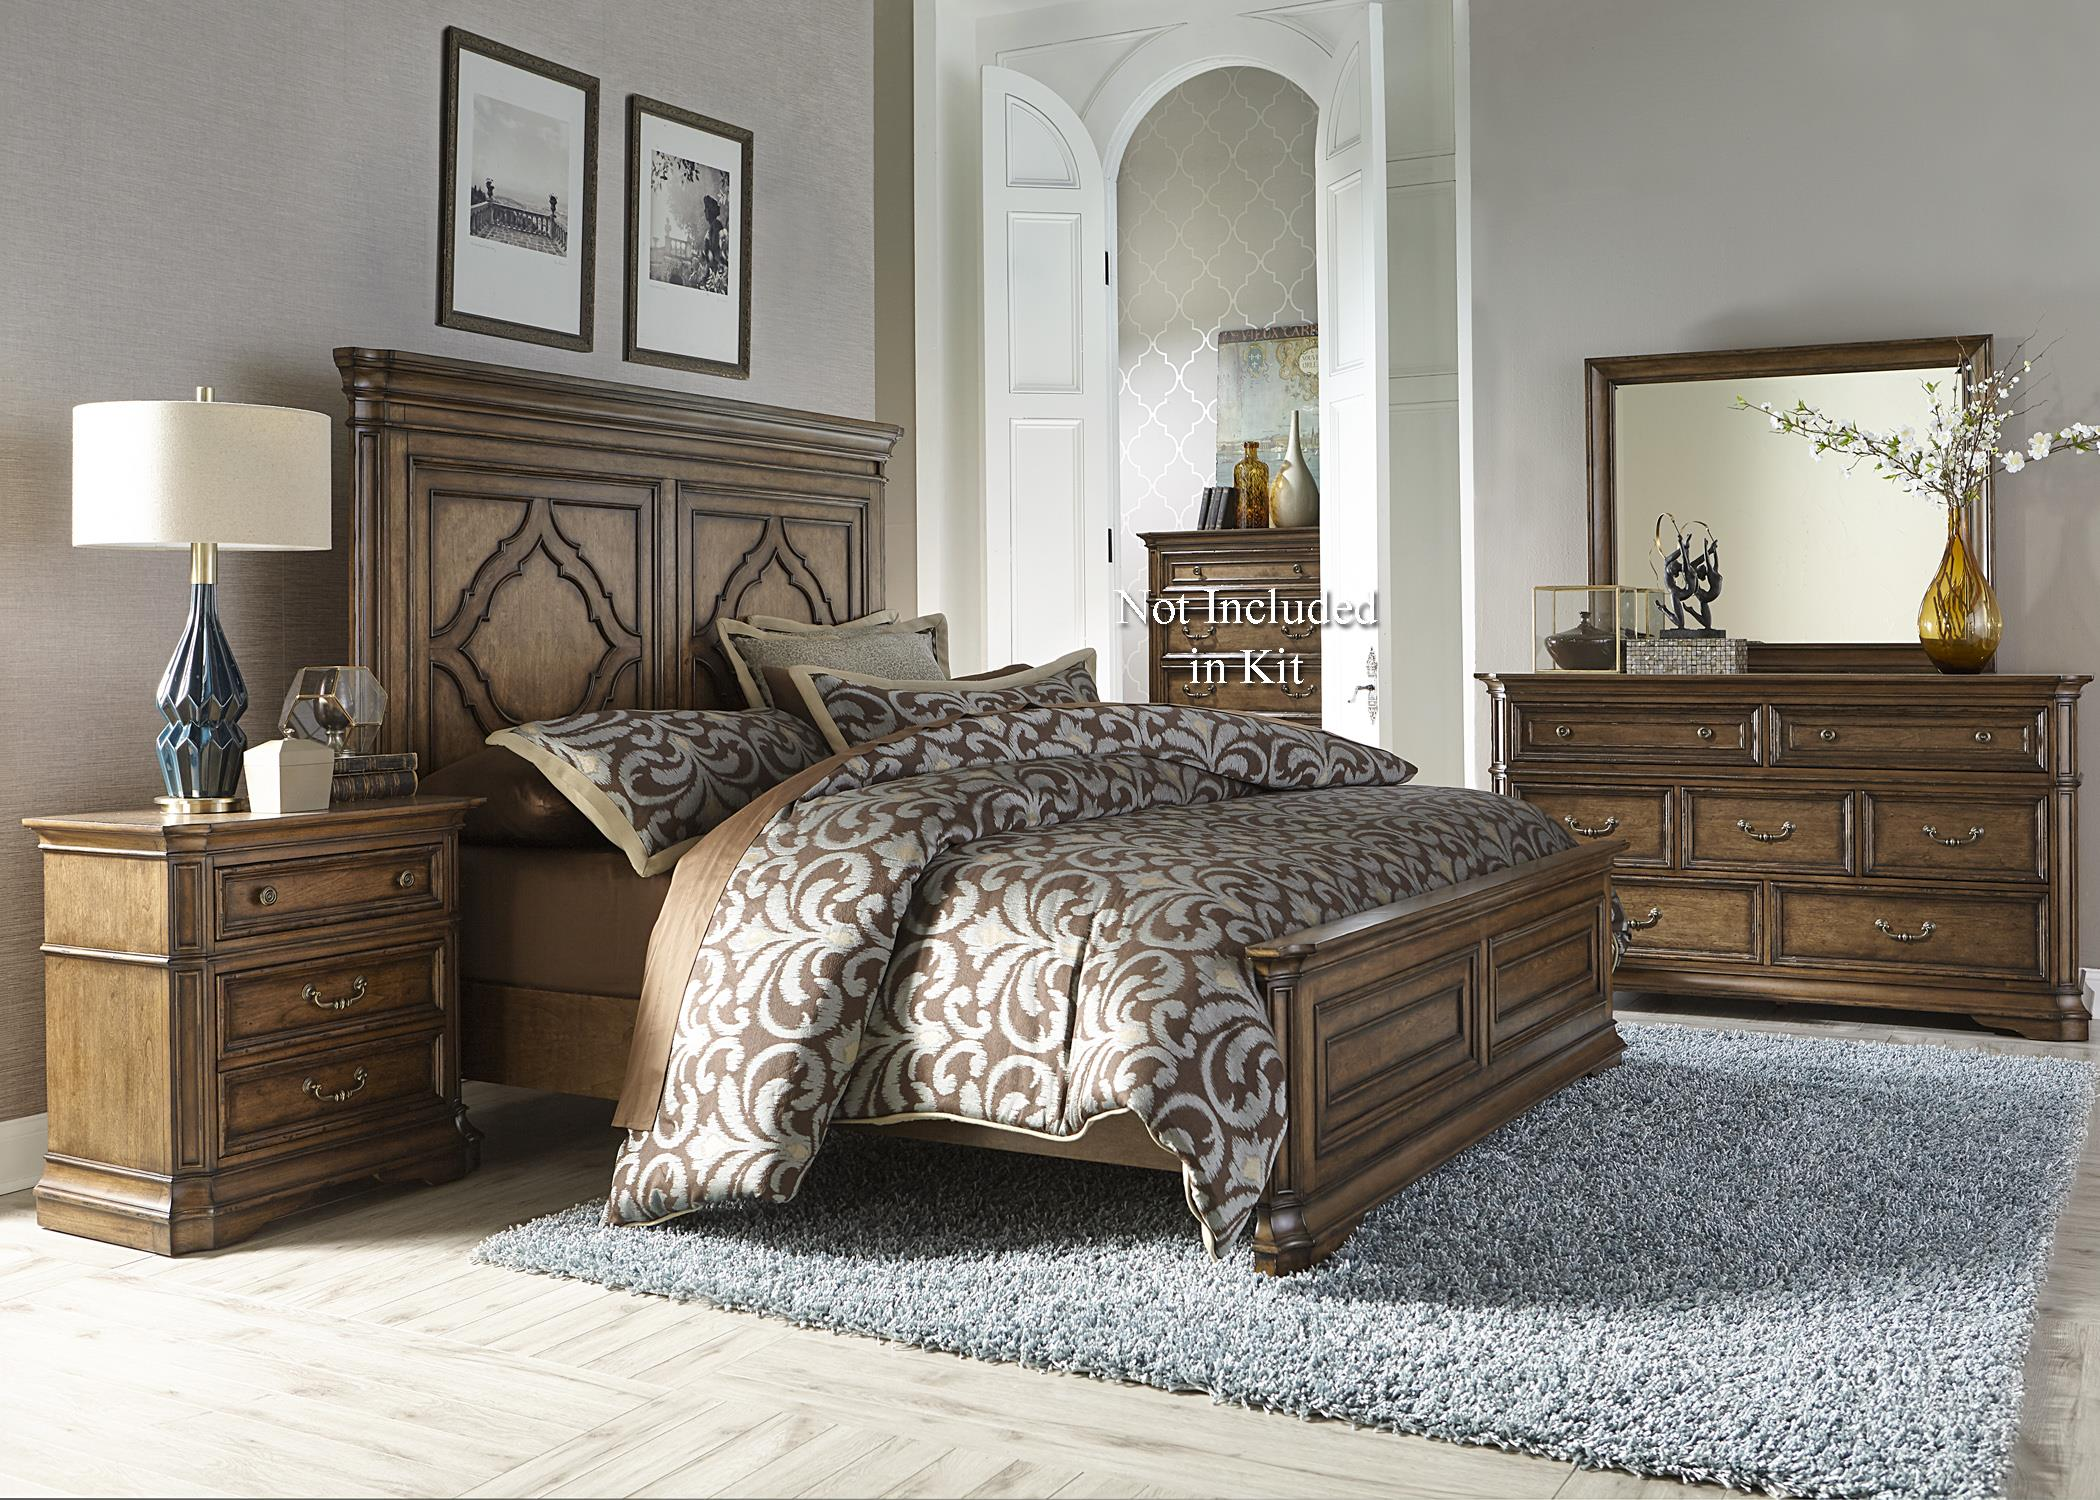 Liberty Furniture Amelia King Bedroom Group - Item Number: 487-BR-KPBDMN